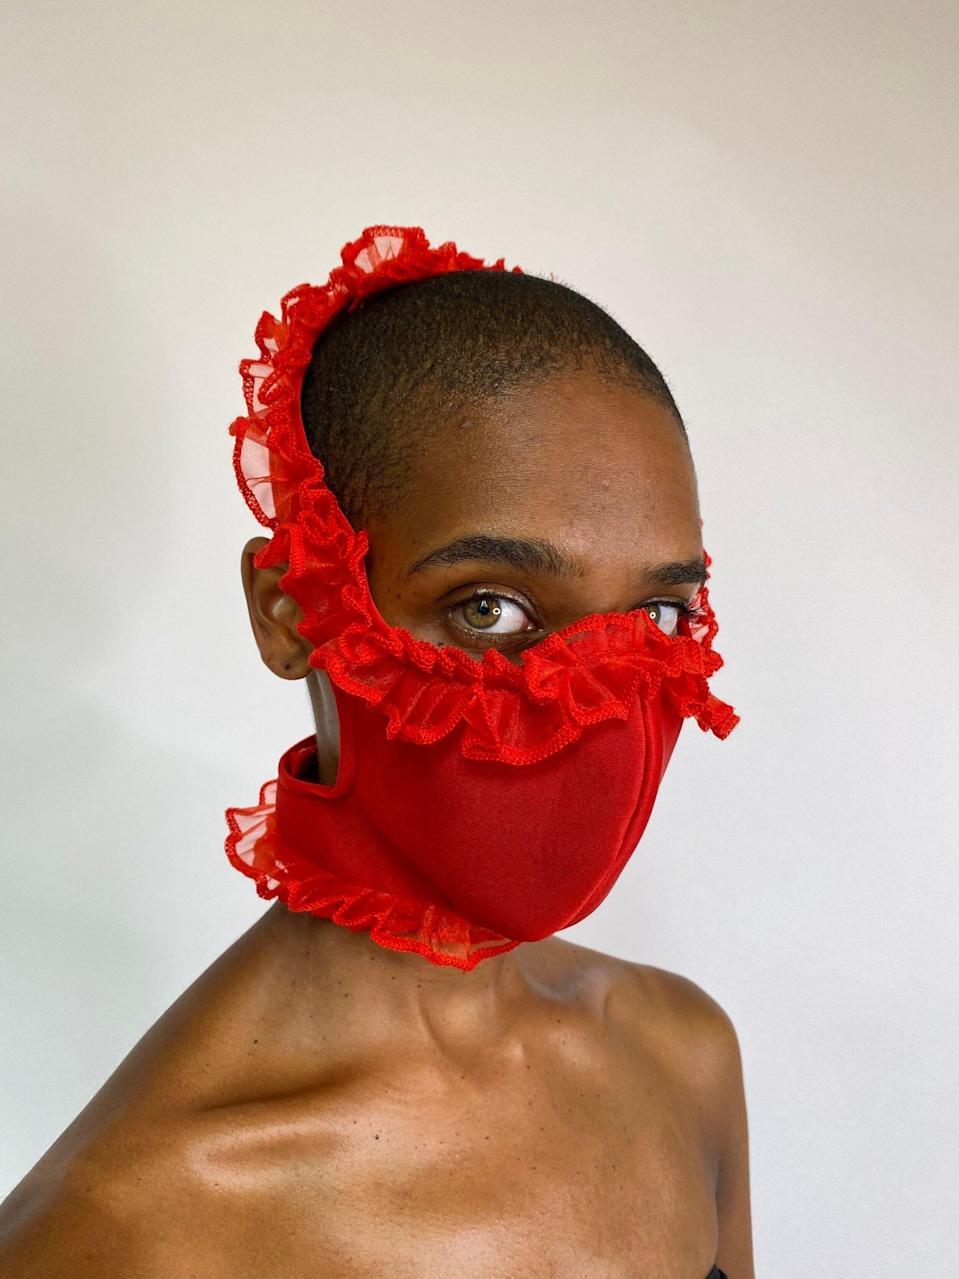 """<p><strong>Tia Adeola</strong></p><p>tiaadeola.com</p><p><strong>$45.00</strong></p><p><a href=""""https://www.tiaadeola.com/shop/red-ruffle-face-mask"""" rel=""""nofollow noopener"""" target=""""_blank"""" data-ylk=""""slk:Shop Now"""" class=""""link rapid-noclick-resp"""">Shop Now</a></p><p>Tia Adeola has a cult following for her ruffled confections, and her always-sold-out masks follow suit. </p>"""